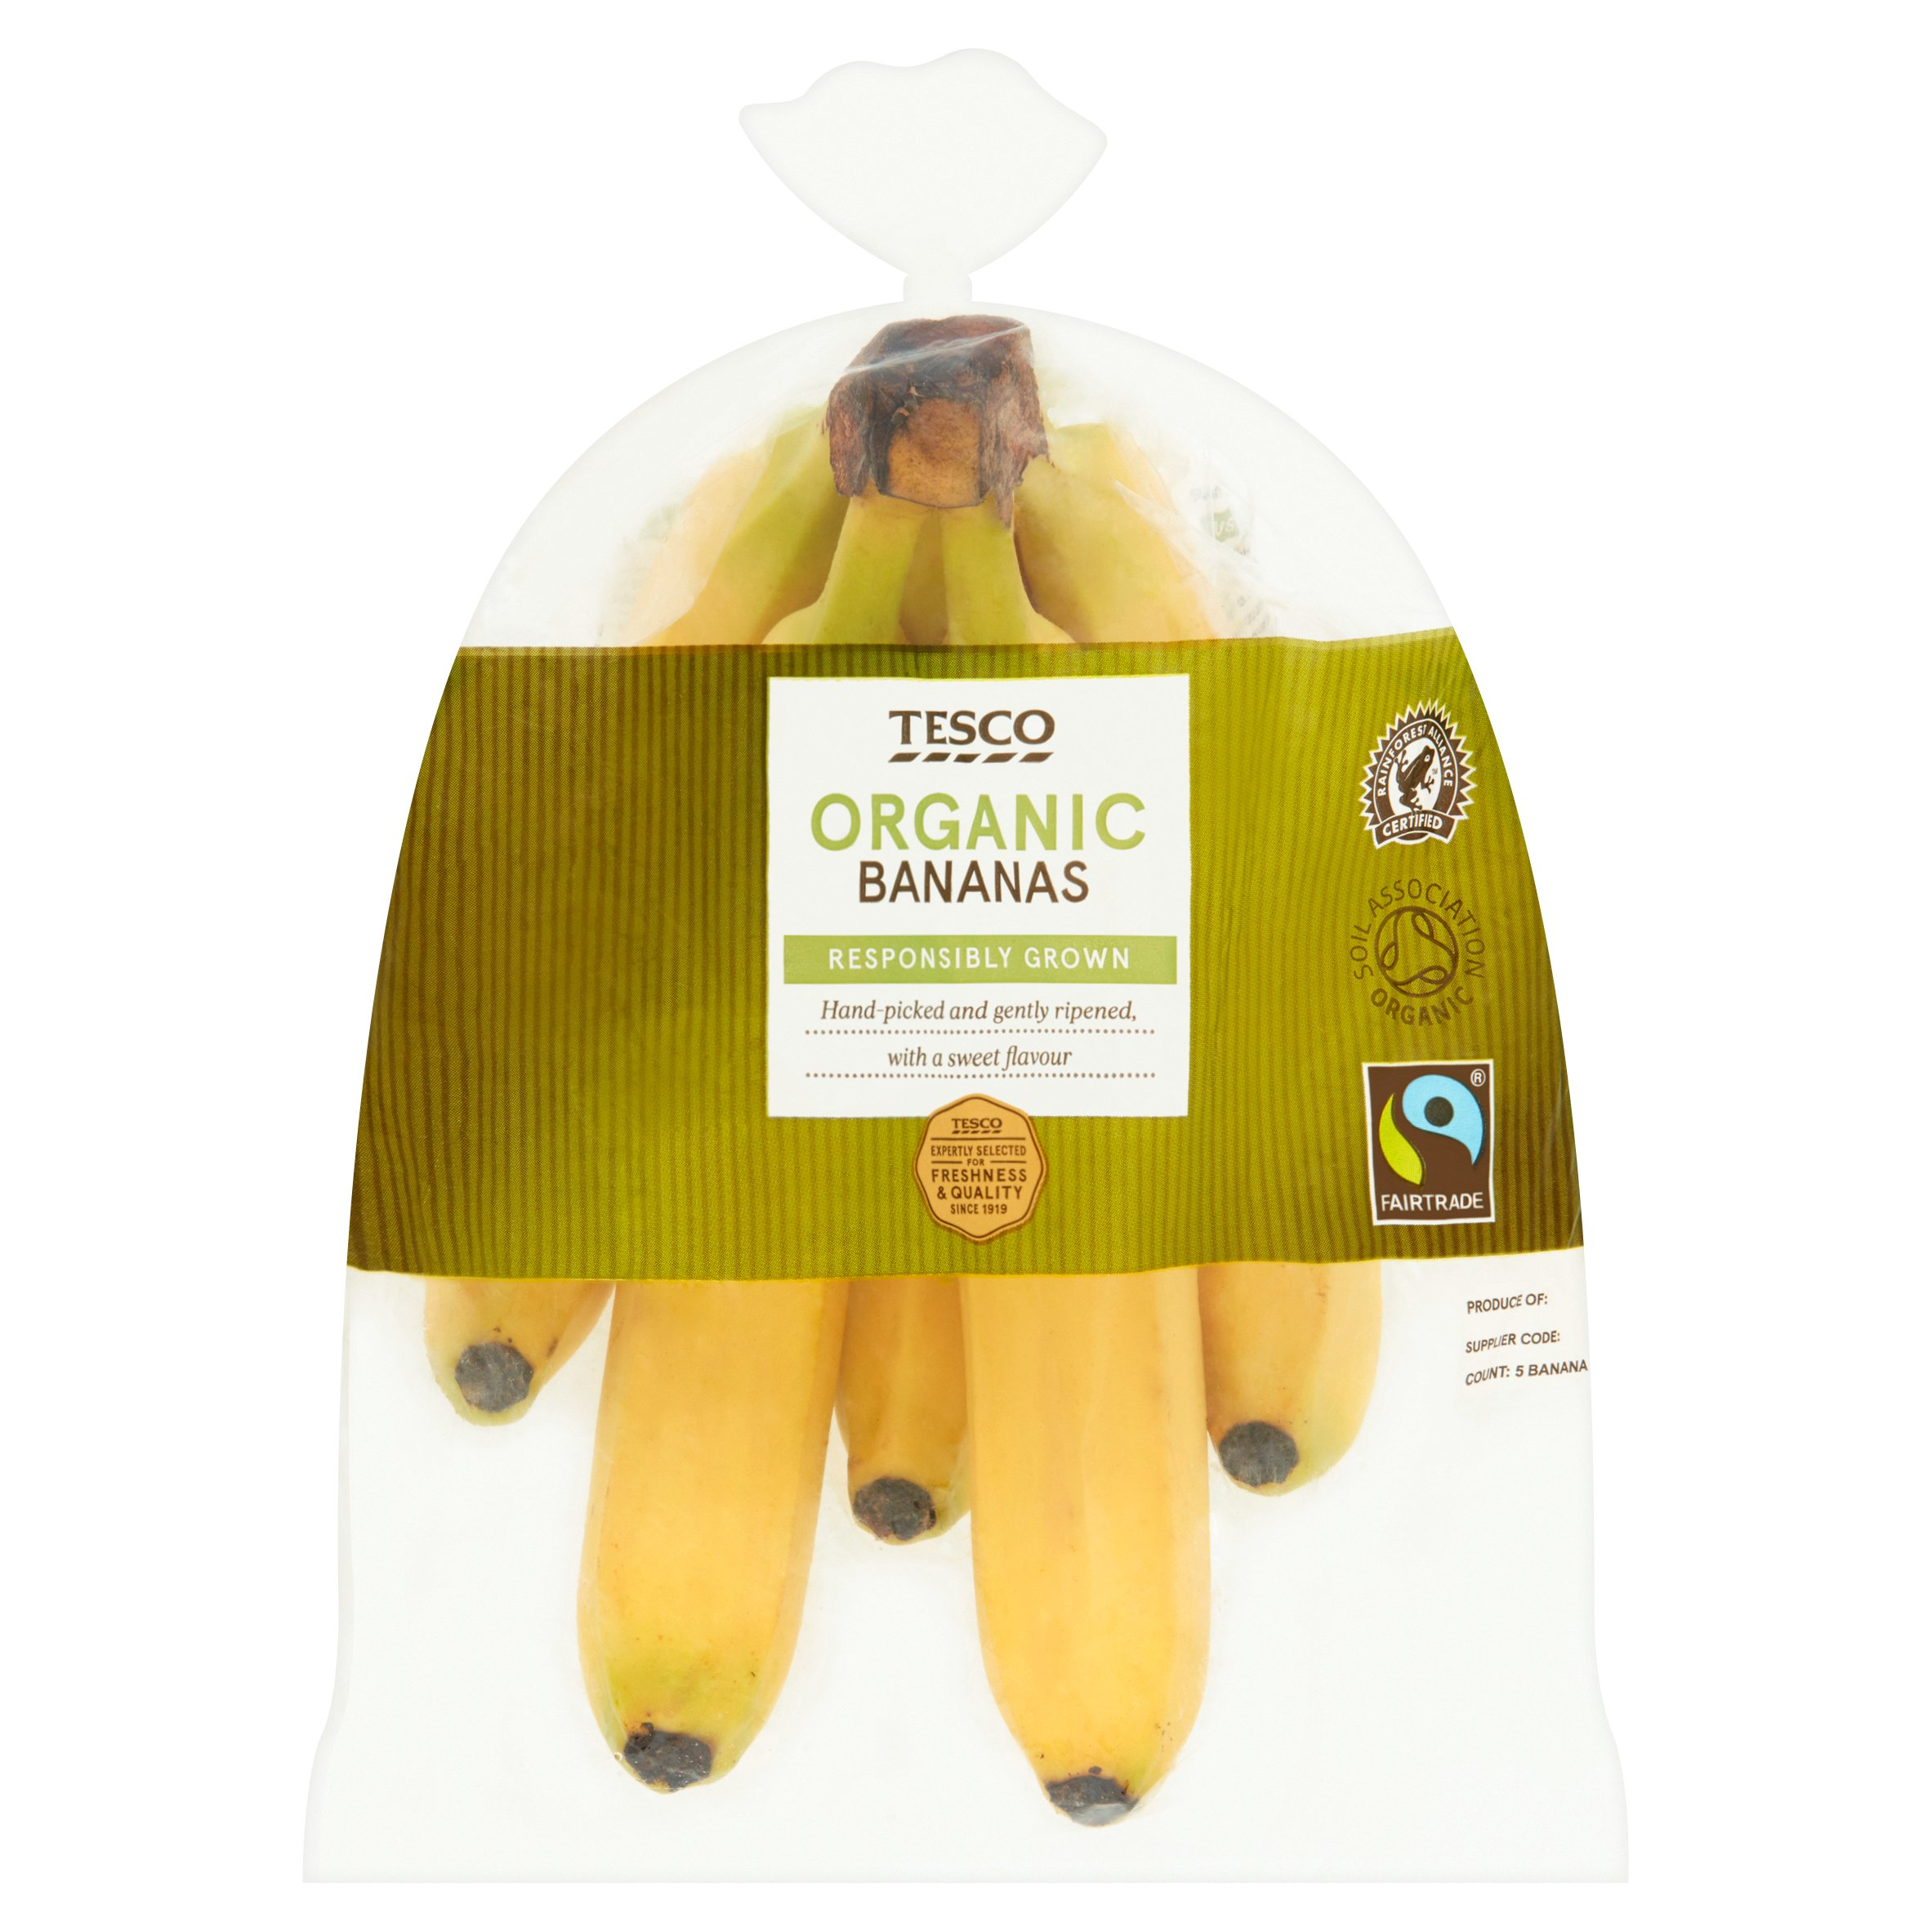 Tesco Organic Fair Trade Bananas 5 Pack